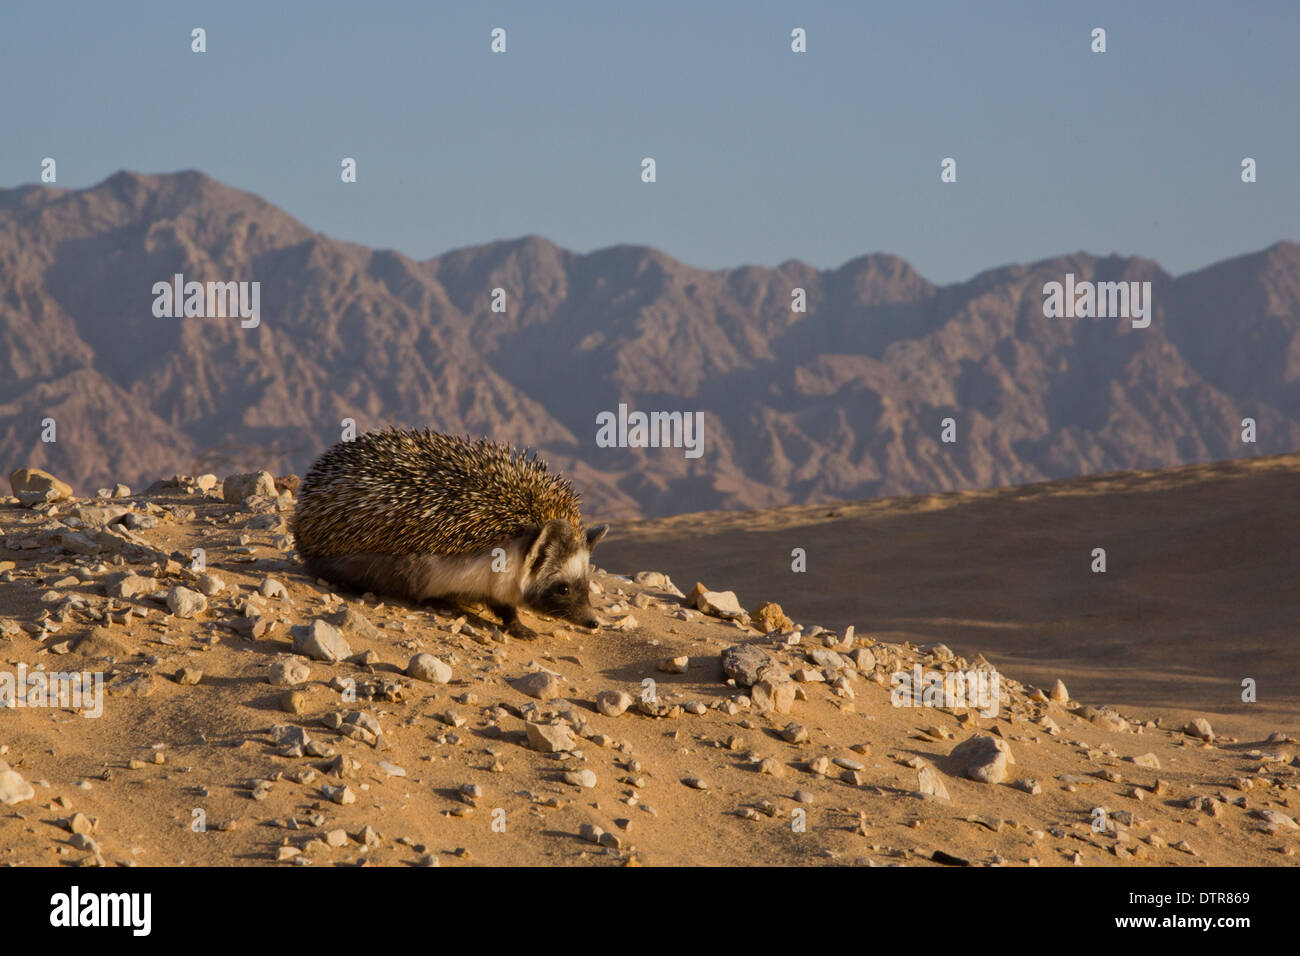 Desert Hedgehog (Paraechinus aethiopicus) photographed in the desert in Israel. The hedgehog is an omnivore and has been known to eat a wide range of - Stock Image